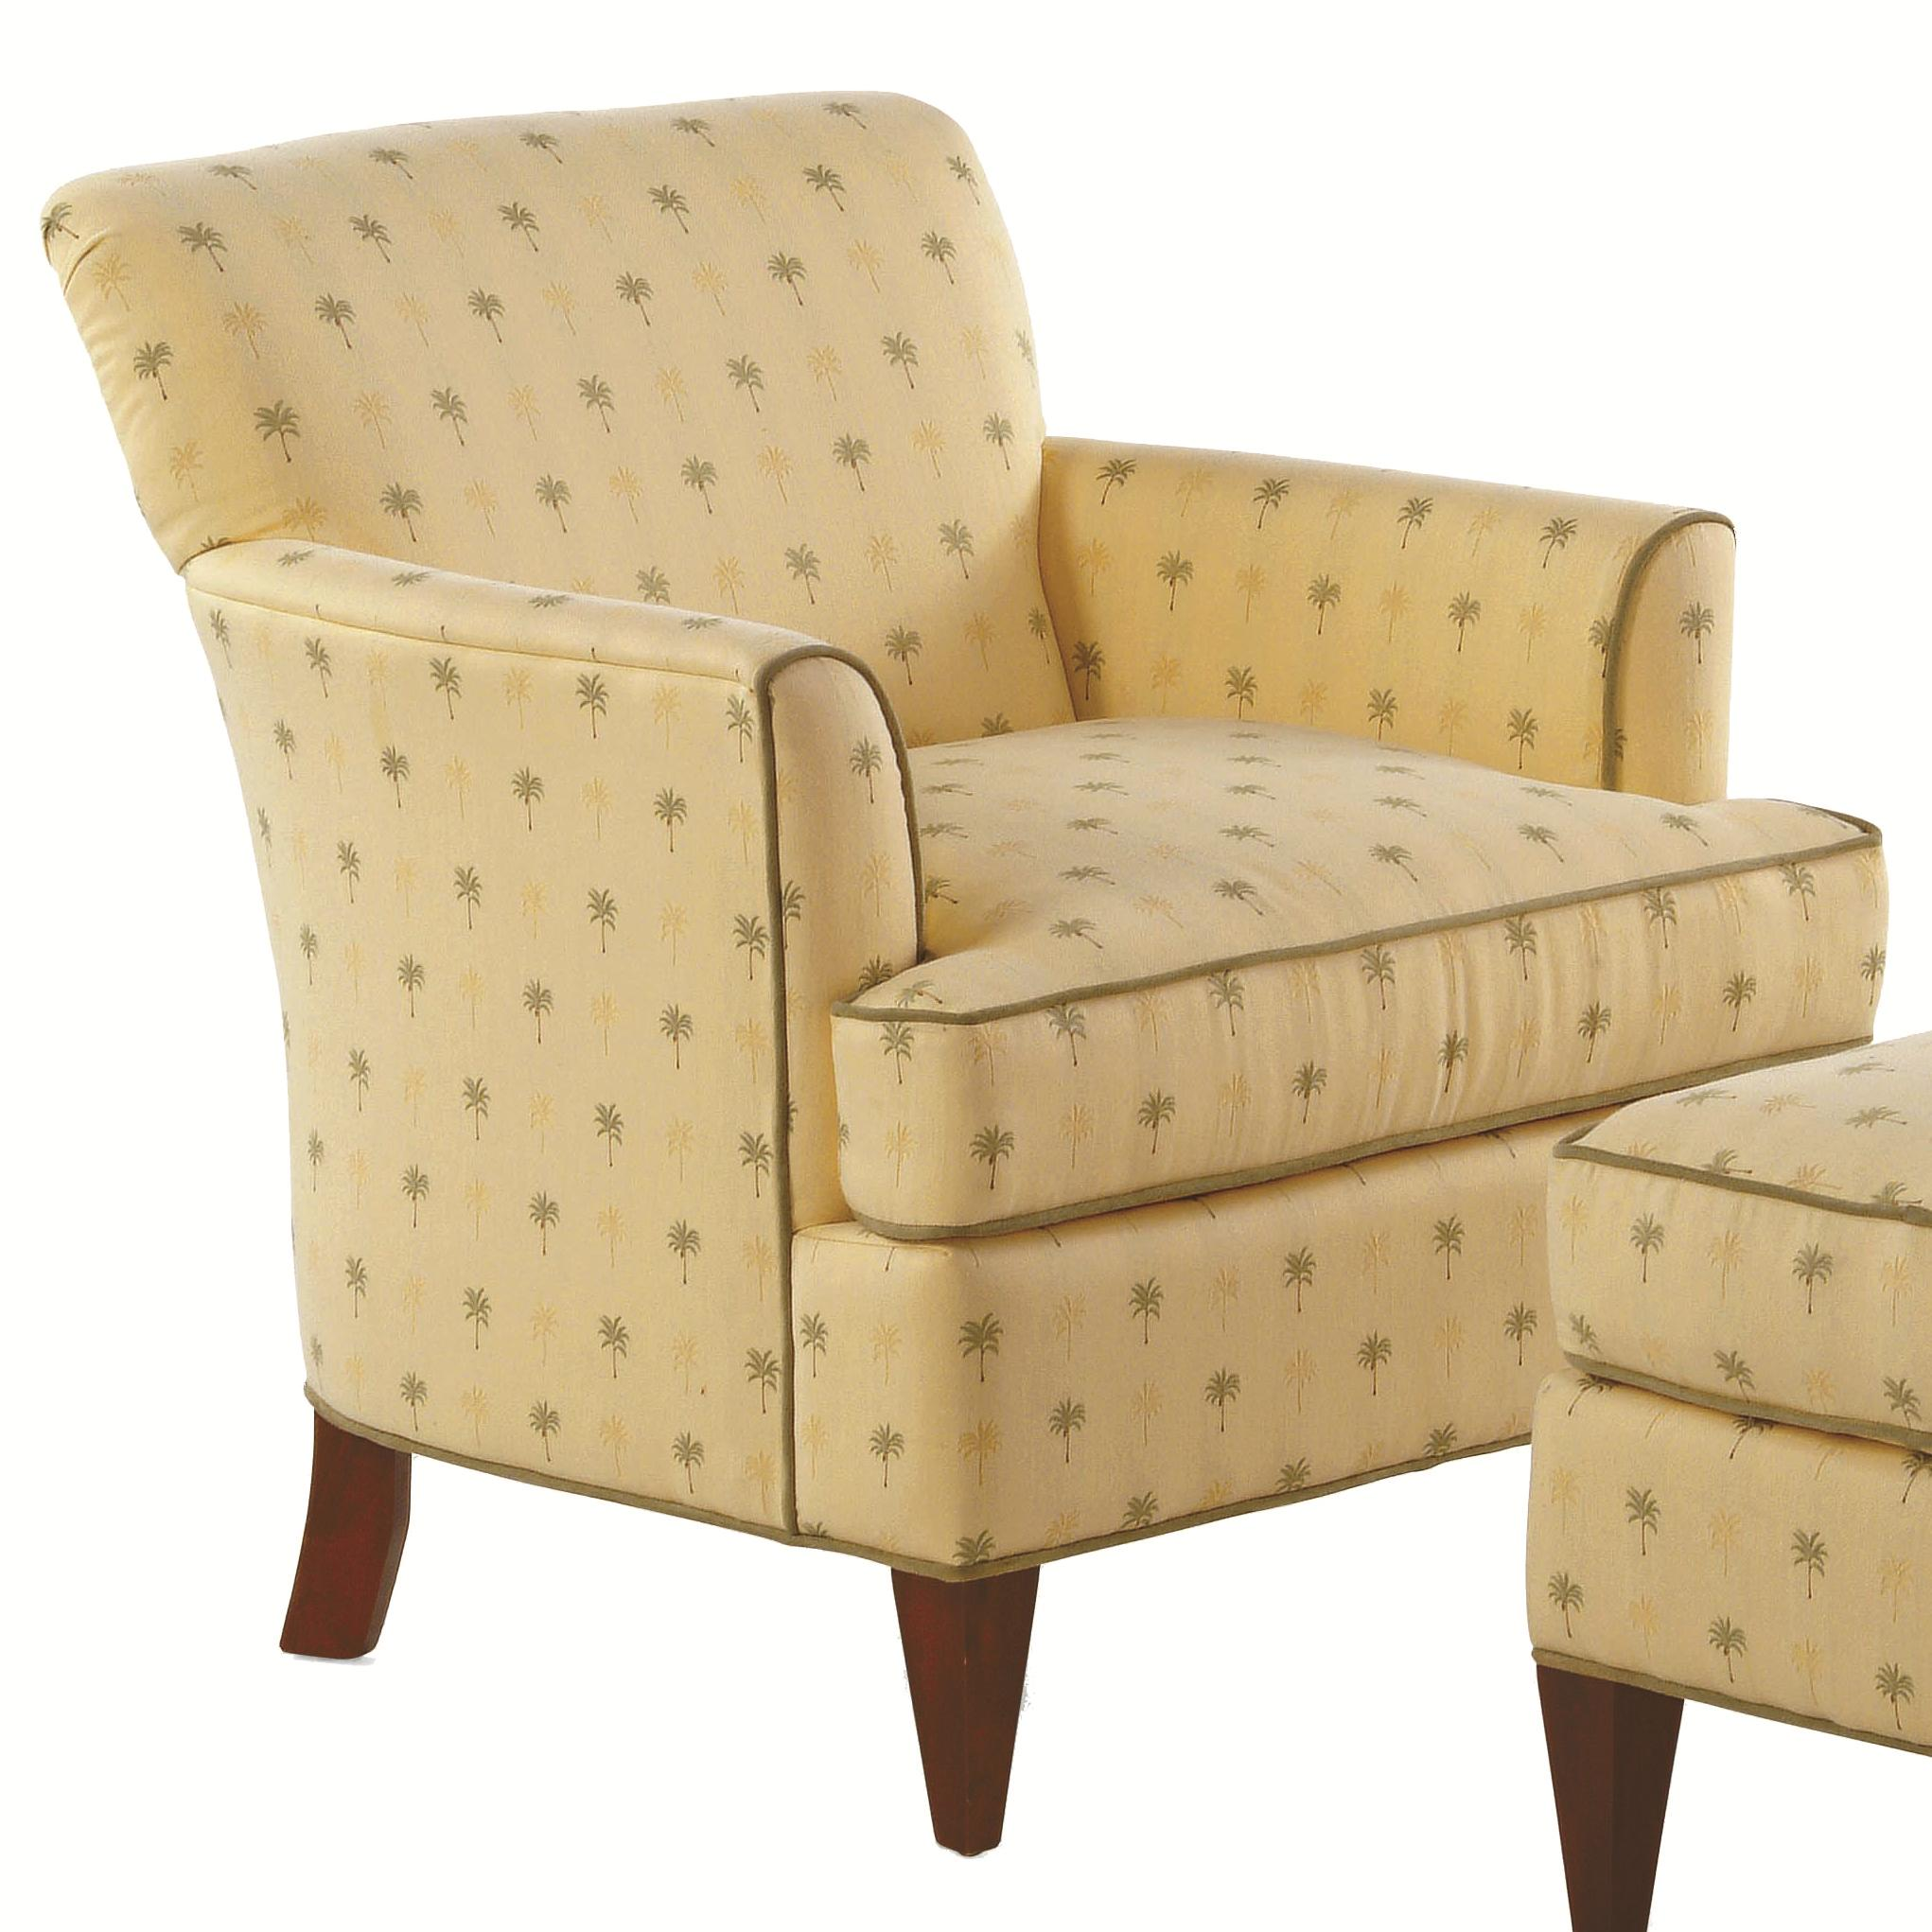 Accent Chairs Tuscany Upholstered Chair by Braxton Culler at Alison Craig Home Furnishings